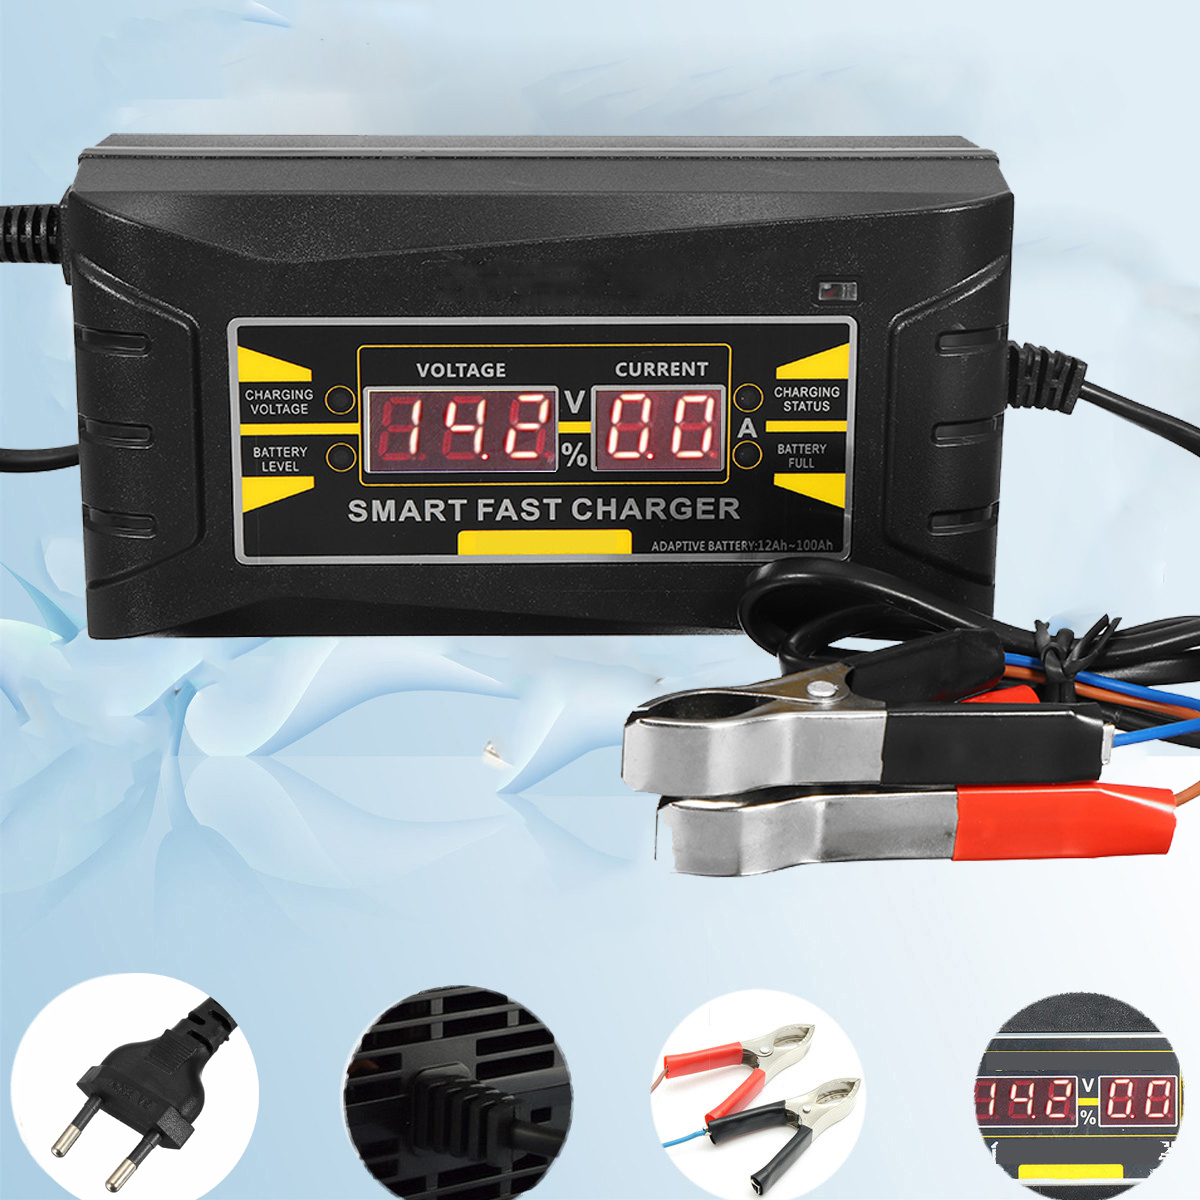 Full Automatic Car Battery Charger 110V/220V To 12V 6A Digital display Smart Fast Power Charging for Car MotorcycleFull Automatic Car Battery Charger 110V/220V To 12V 6A Digital display Smart Fast Power Charging for Car Motorcycle